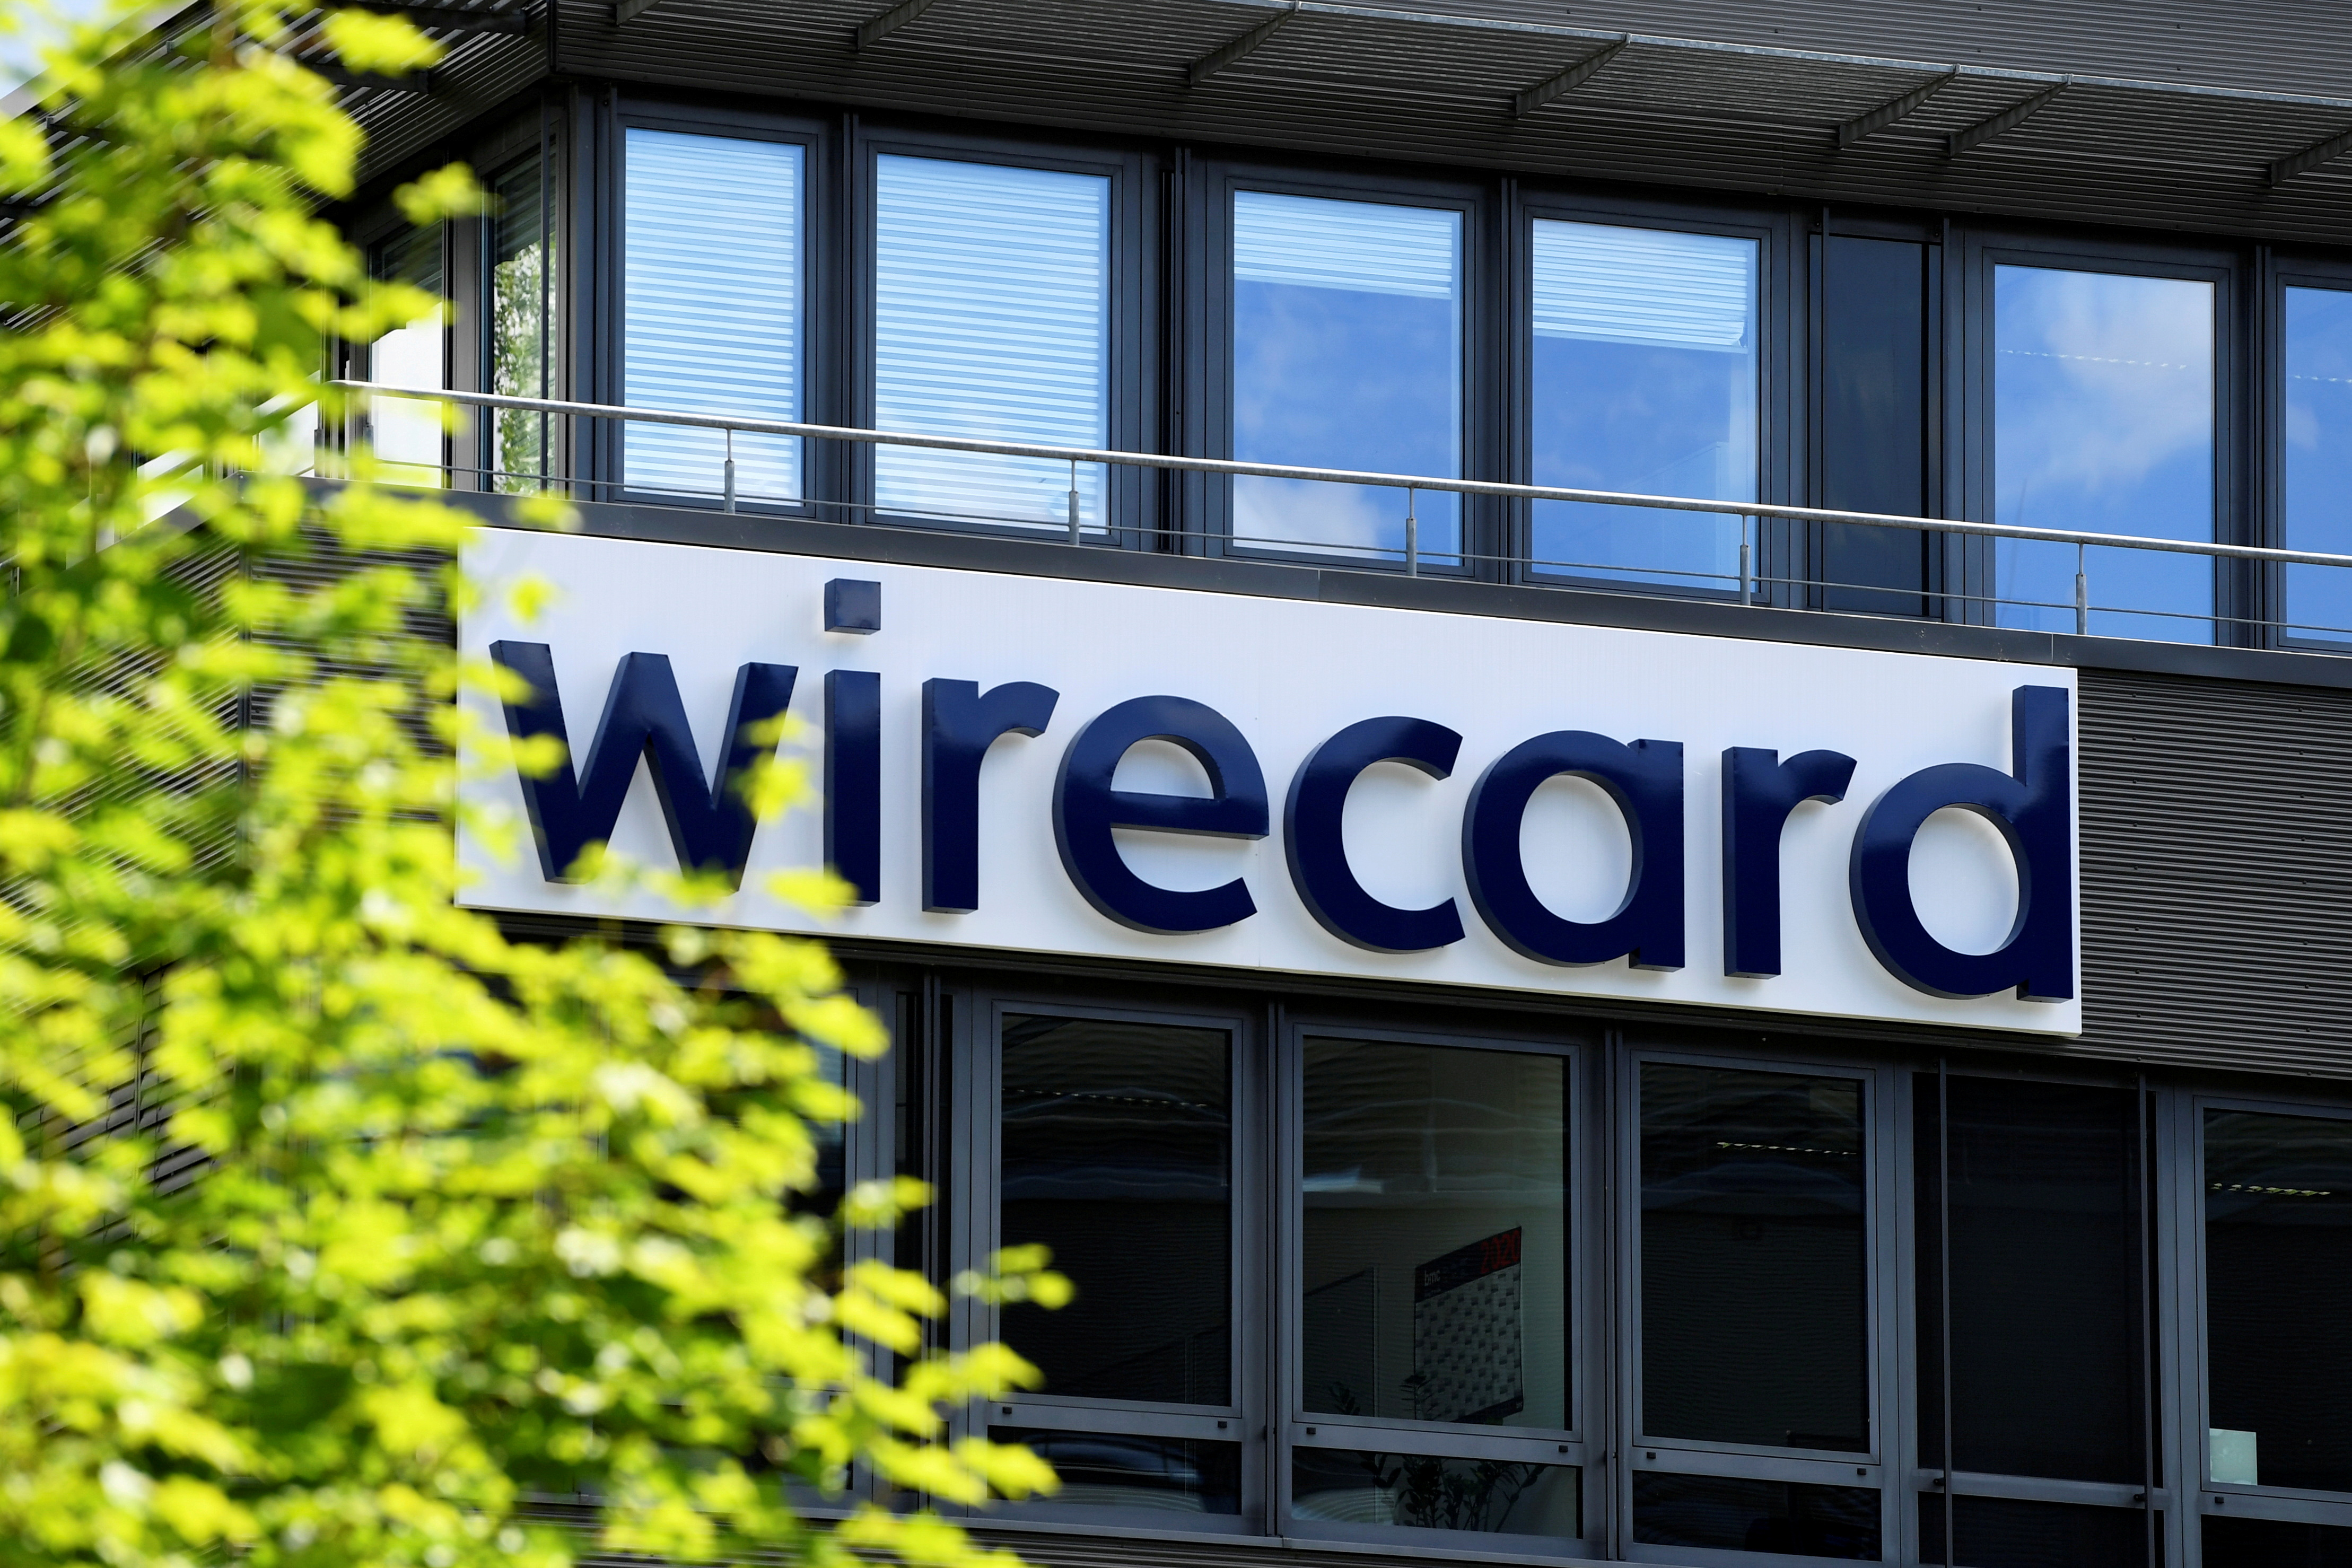 The logo of Wirecard AG is pictured at its headquarters in Aschheim, near Munich, Germany, July 1, 2020. REUTERS/Andreas Gebert/File Photo